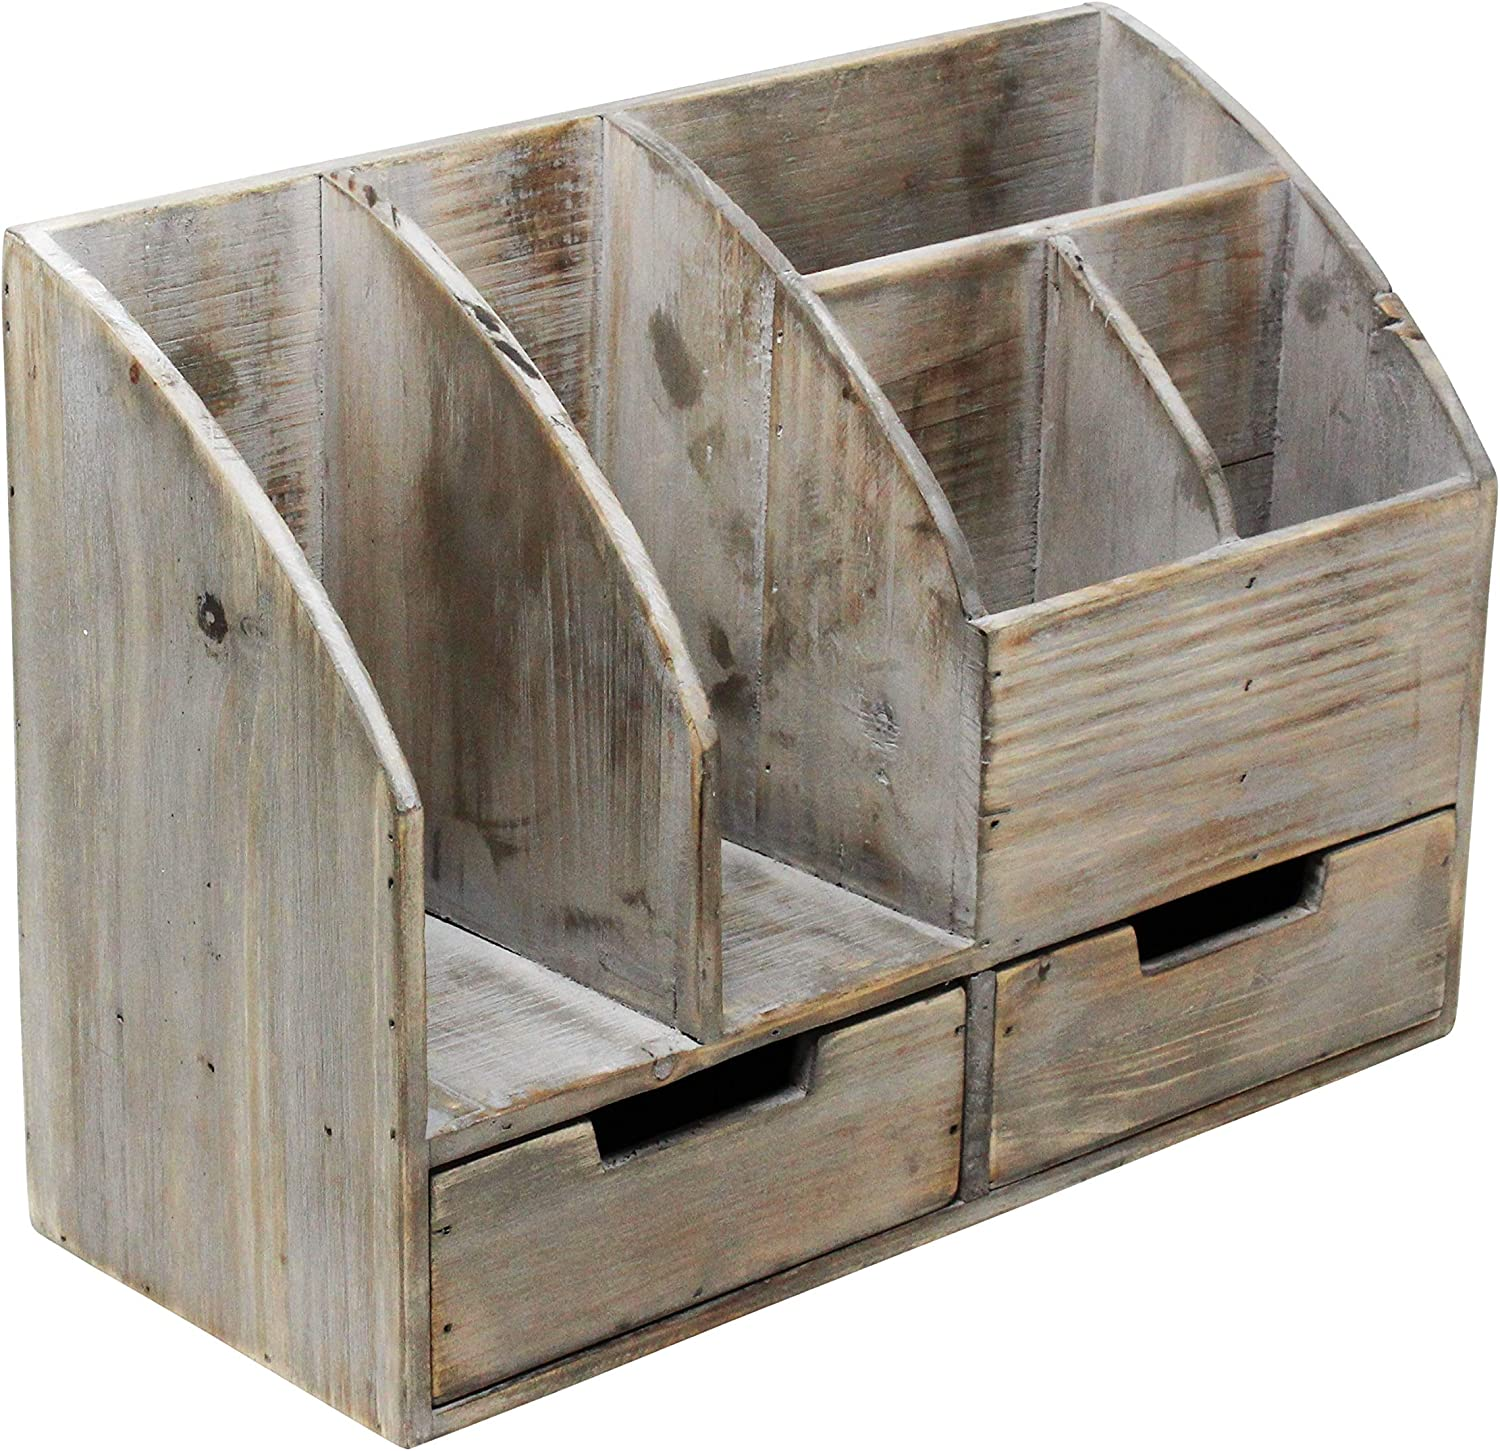 or Mail or Counter Tabletop Vintage Rustic Wooden Office Desk Organizer /& Mail Rack for Desktop Distressed White Washed Torched Wood for Office Supplies Desk Accessories